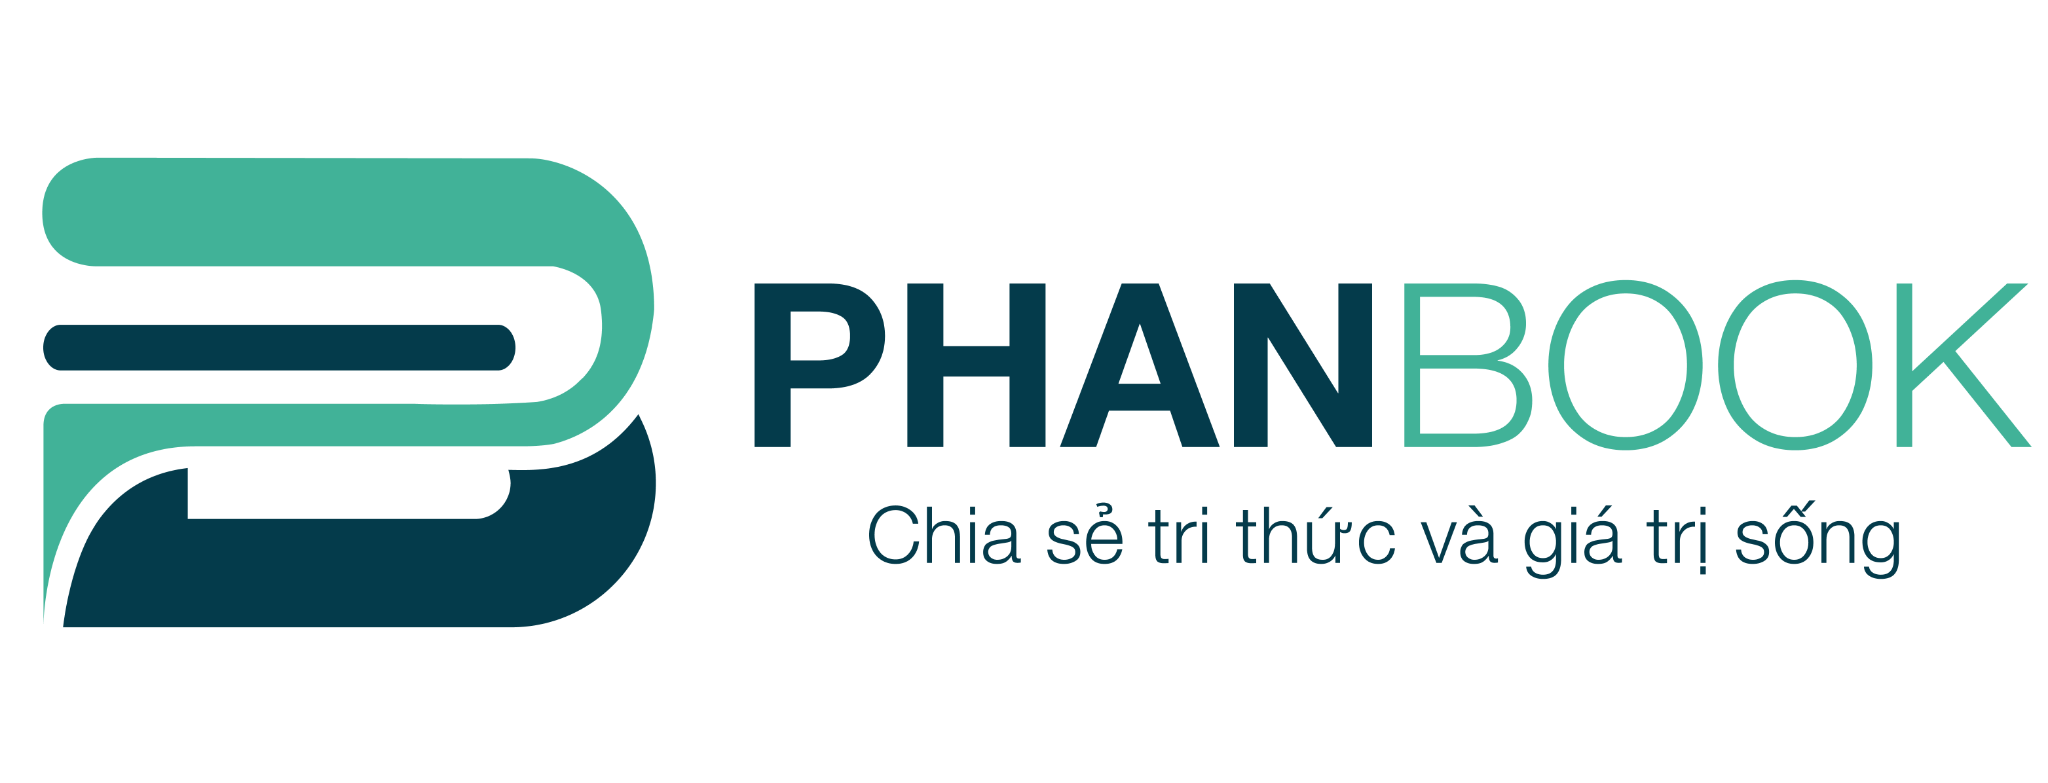 phanbook.vn